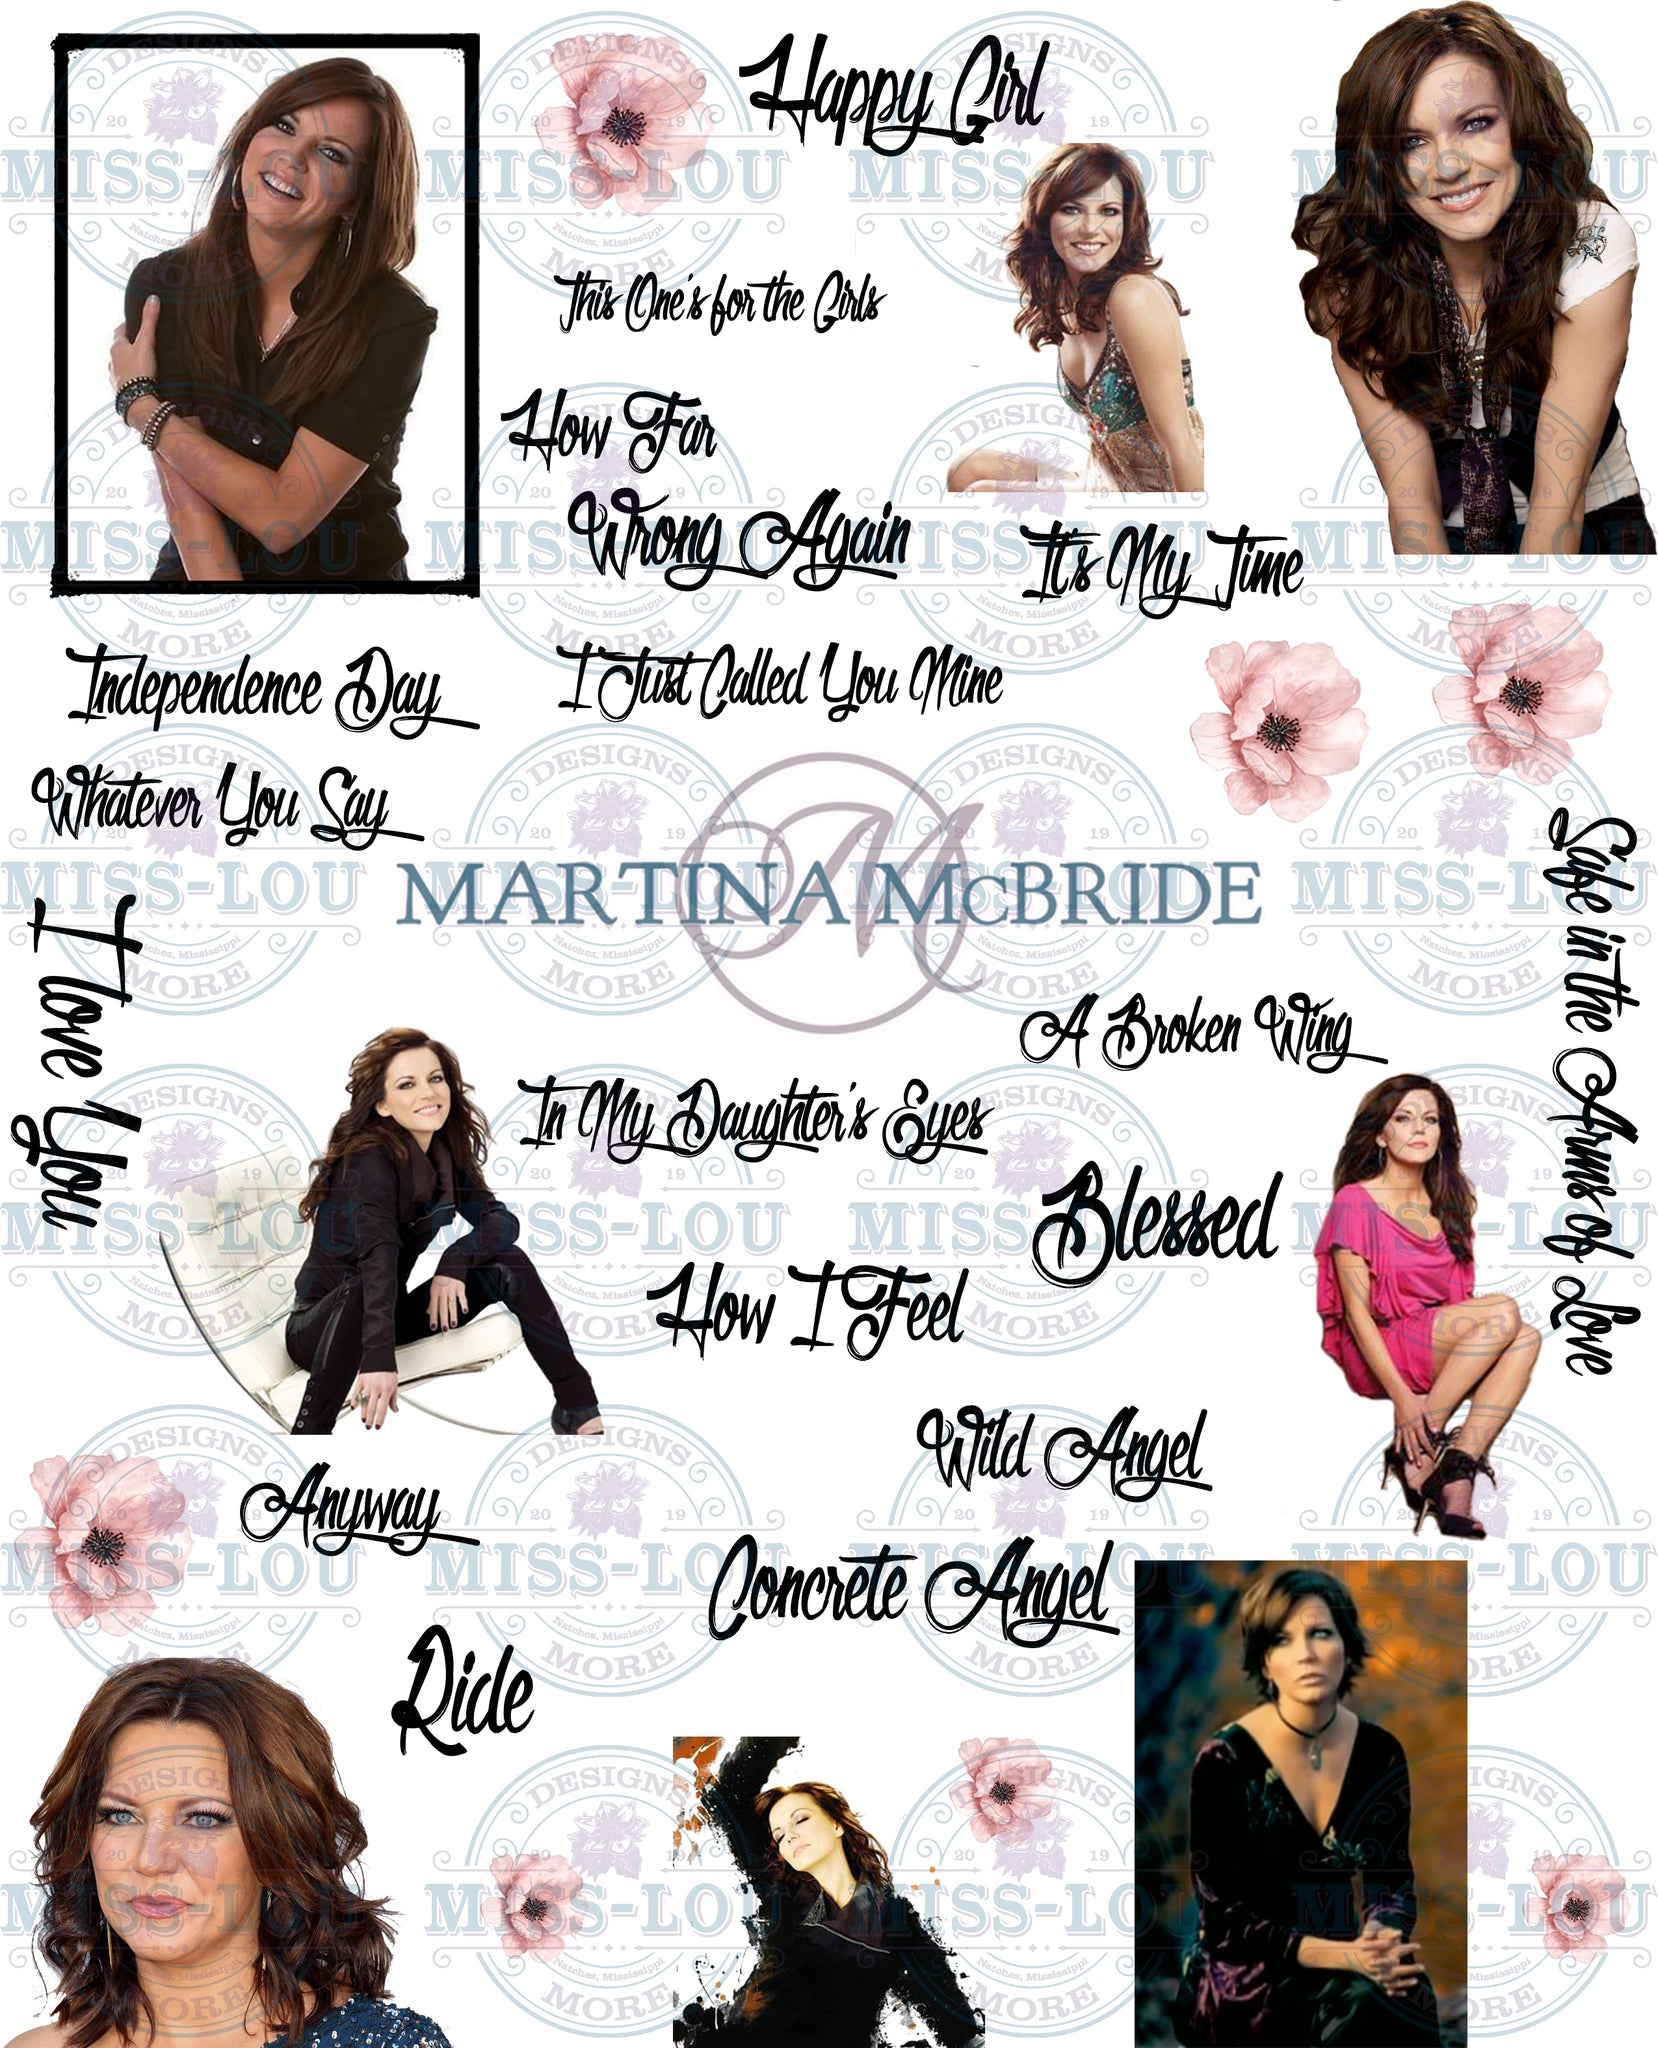 Martina McBride Fan Sheet Waterslide